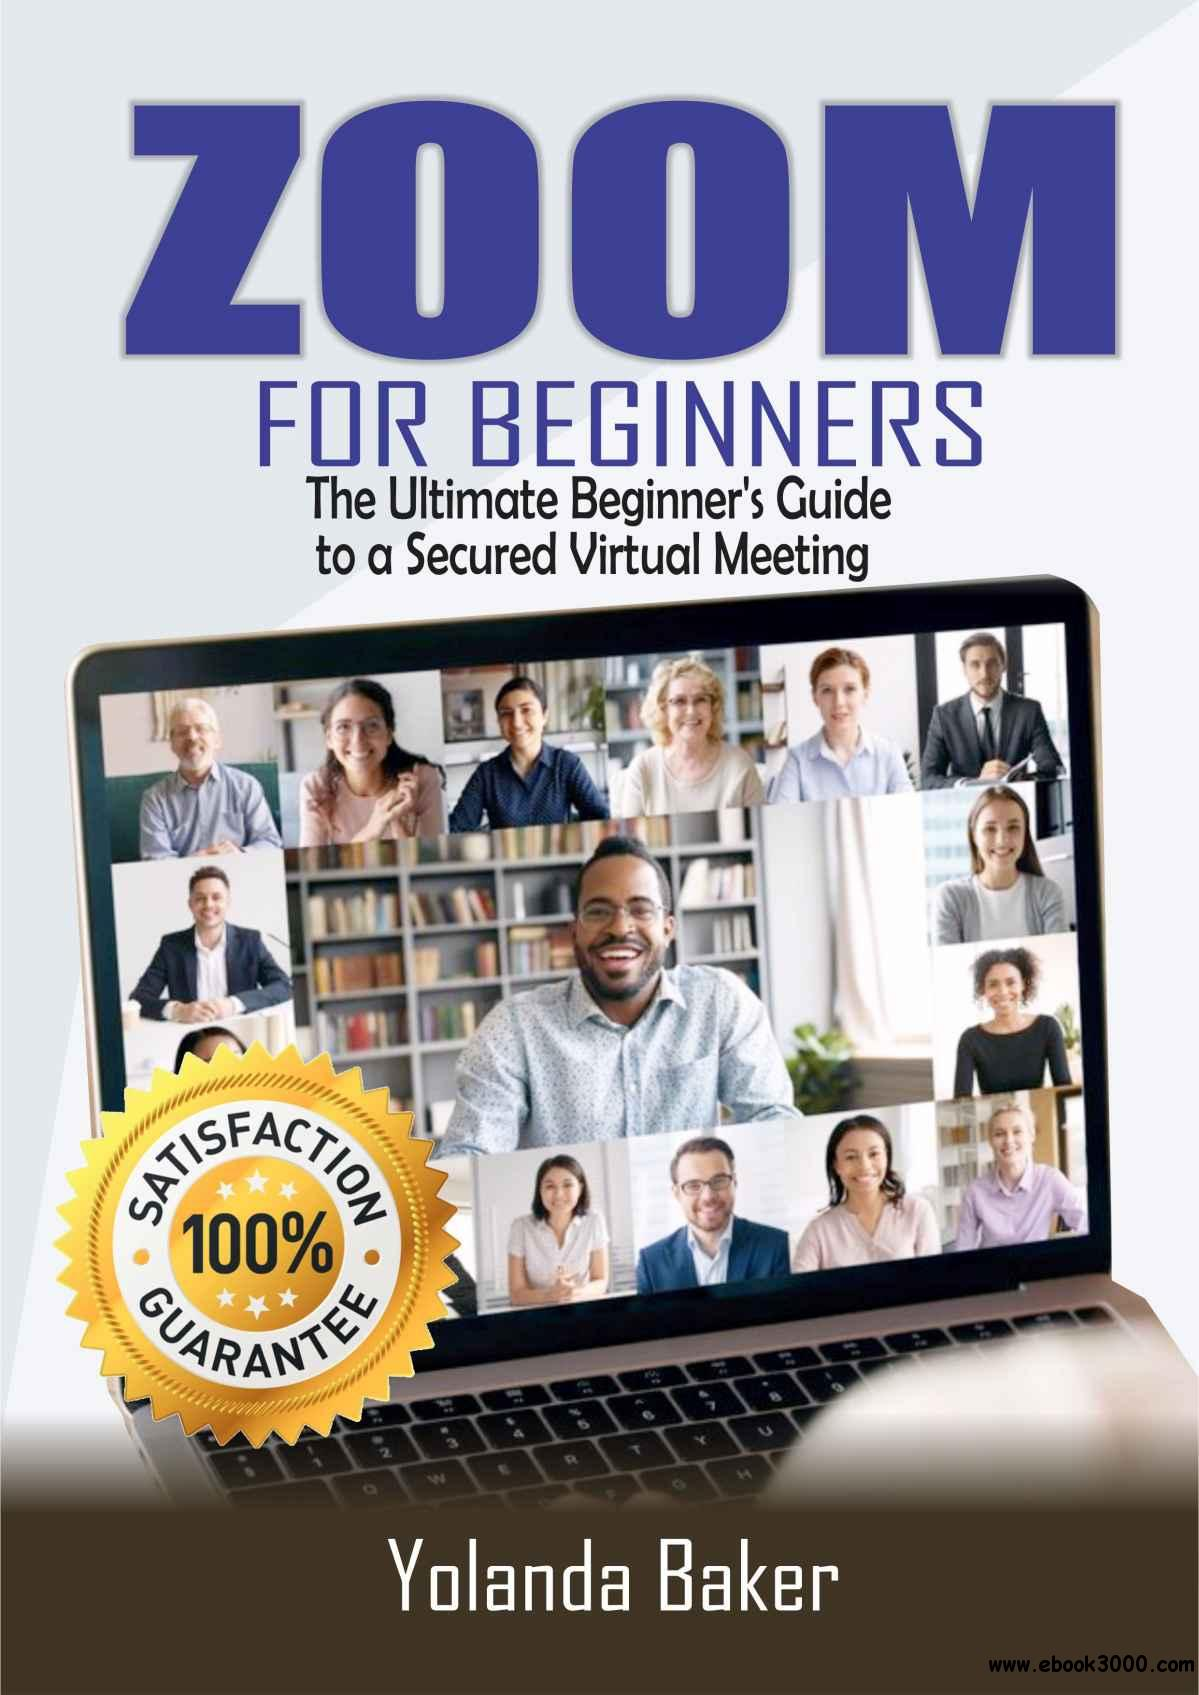 ZOOM FOR BEGINNERS: The Ultimate Beginner's Guide to a Secured Virtual Meeting